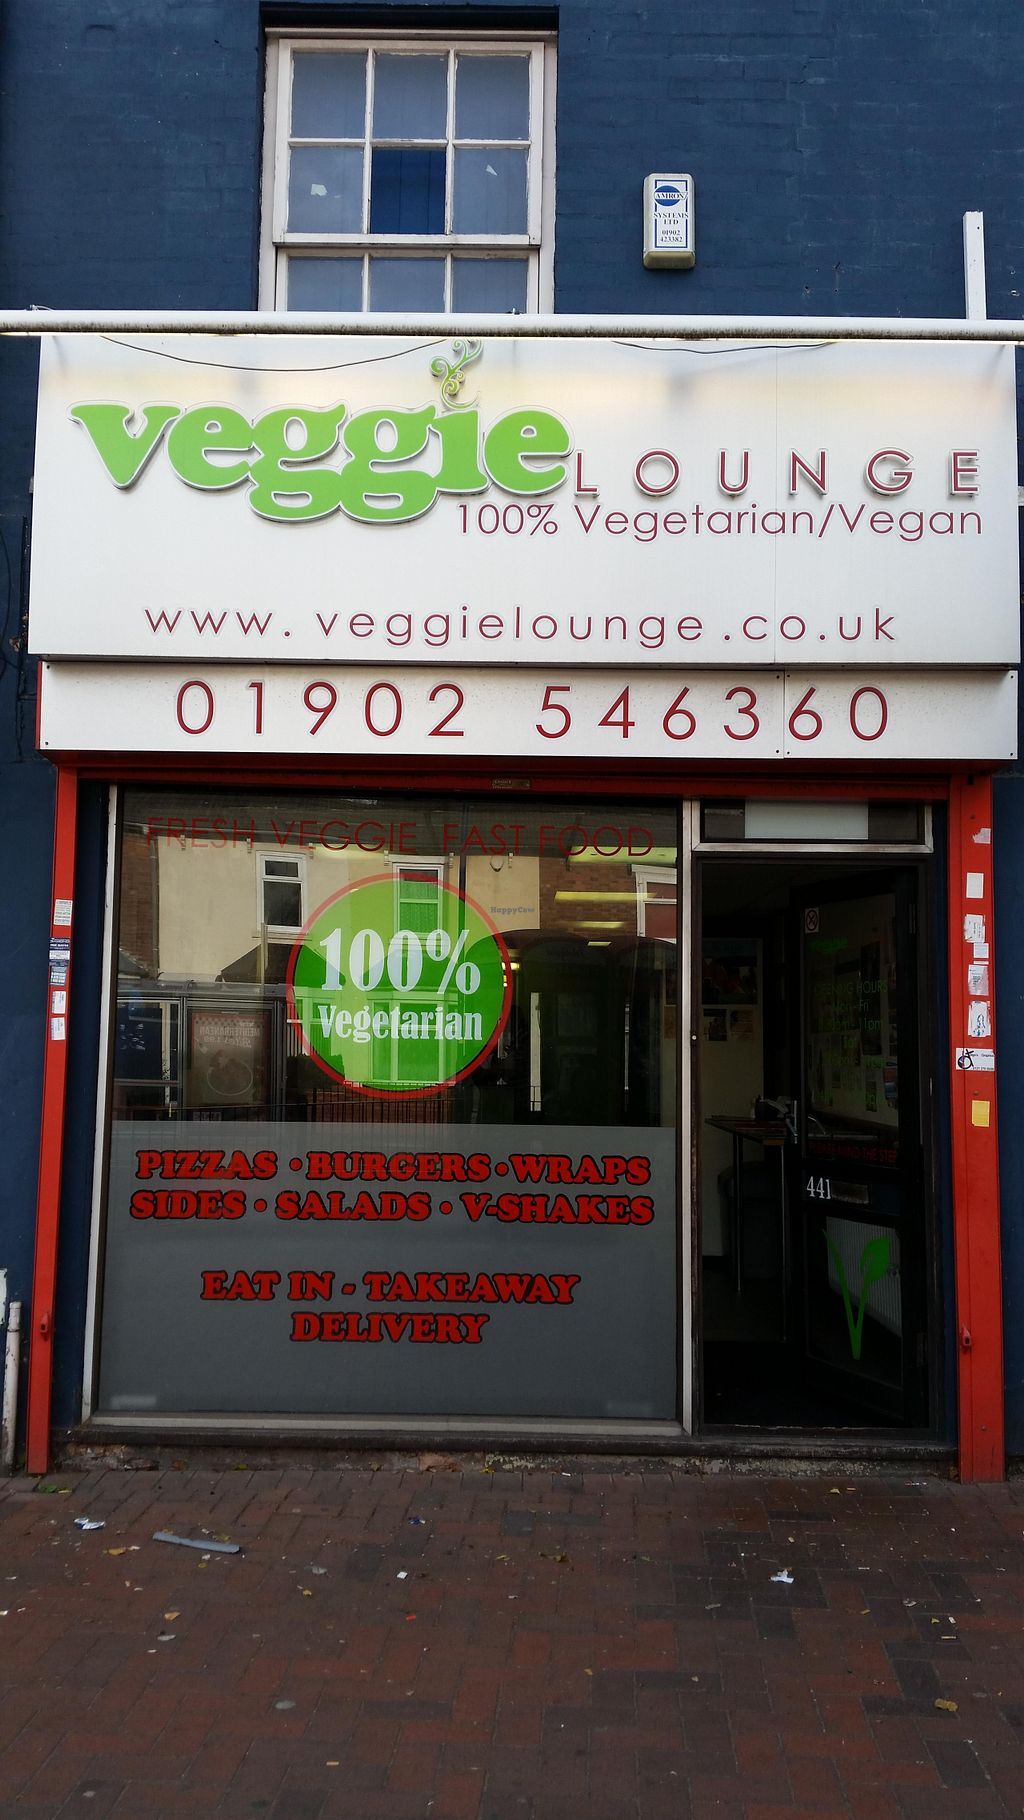 """Photo of Veggie Lounge  by <a href=""""/members/profile/konlish"""">konlish</a> <br/>Outside <br/> August 2, 2015  - <a href='/contact/abuse/image/27845/112002'>Report</a>"""